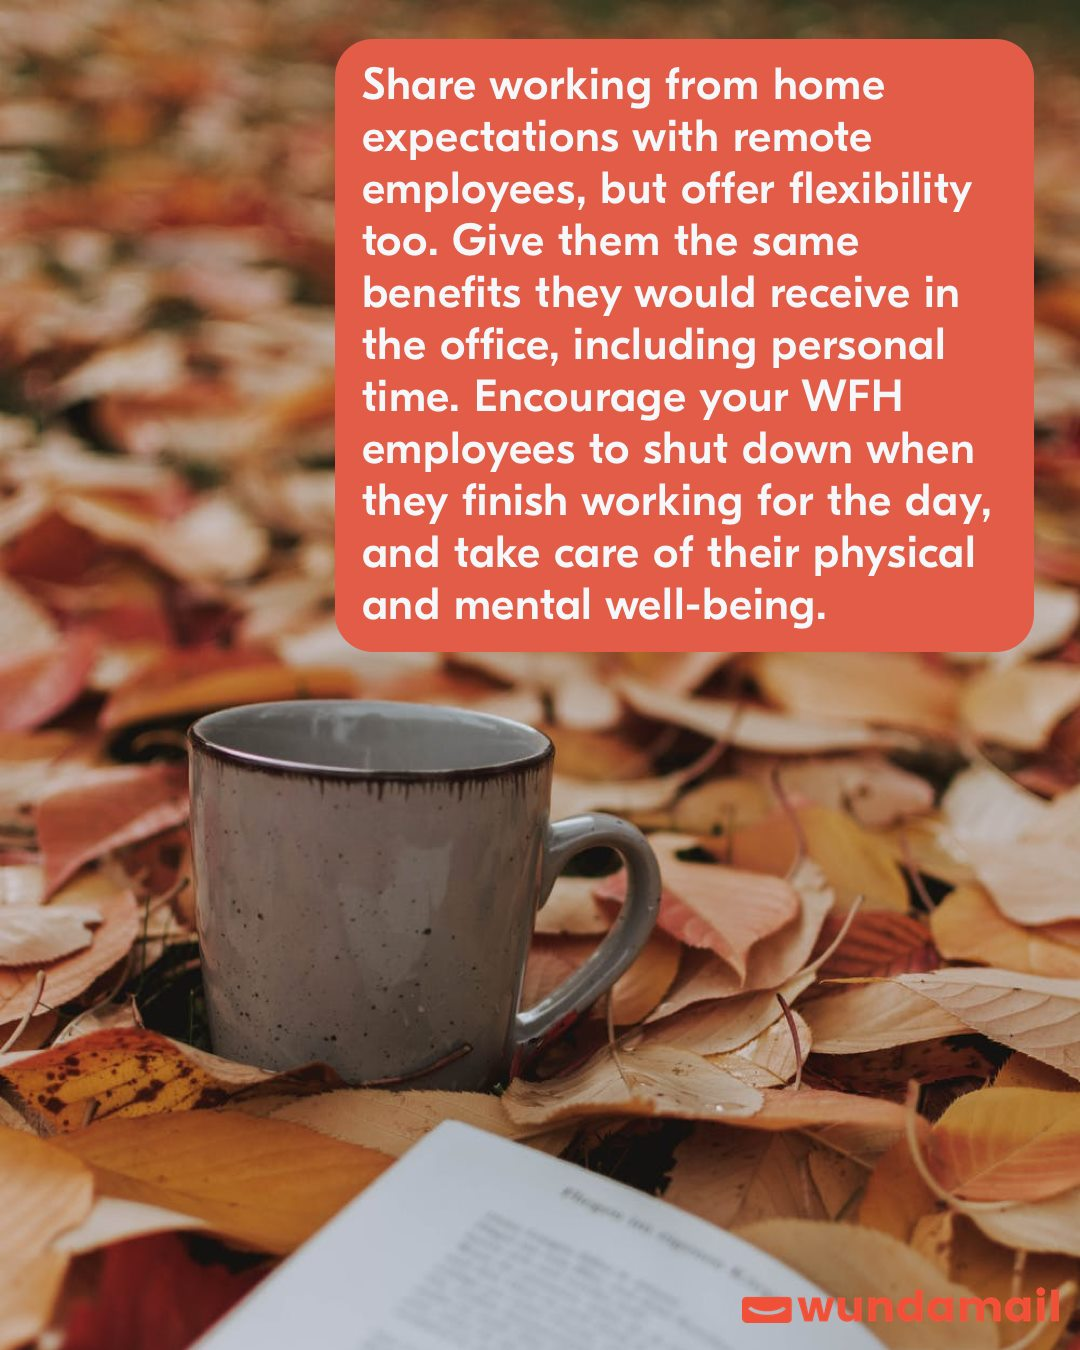 Share working from home expectations with remote employees, but offer flexibility too.